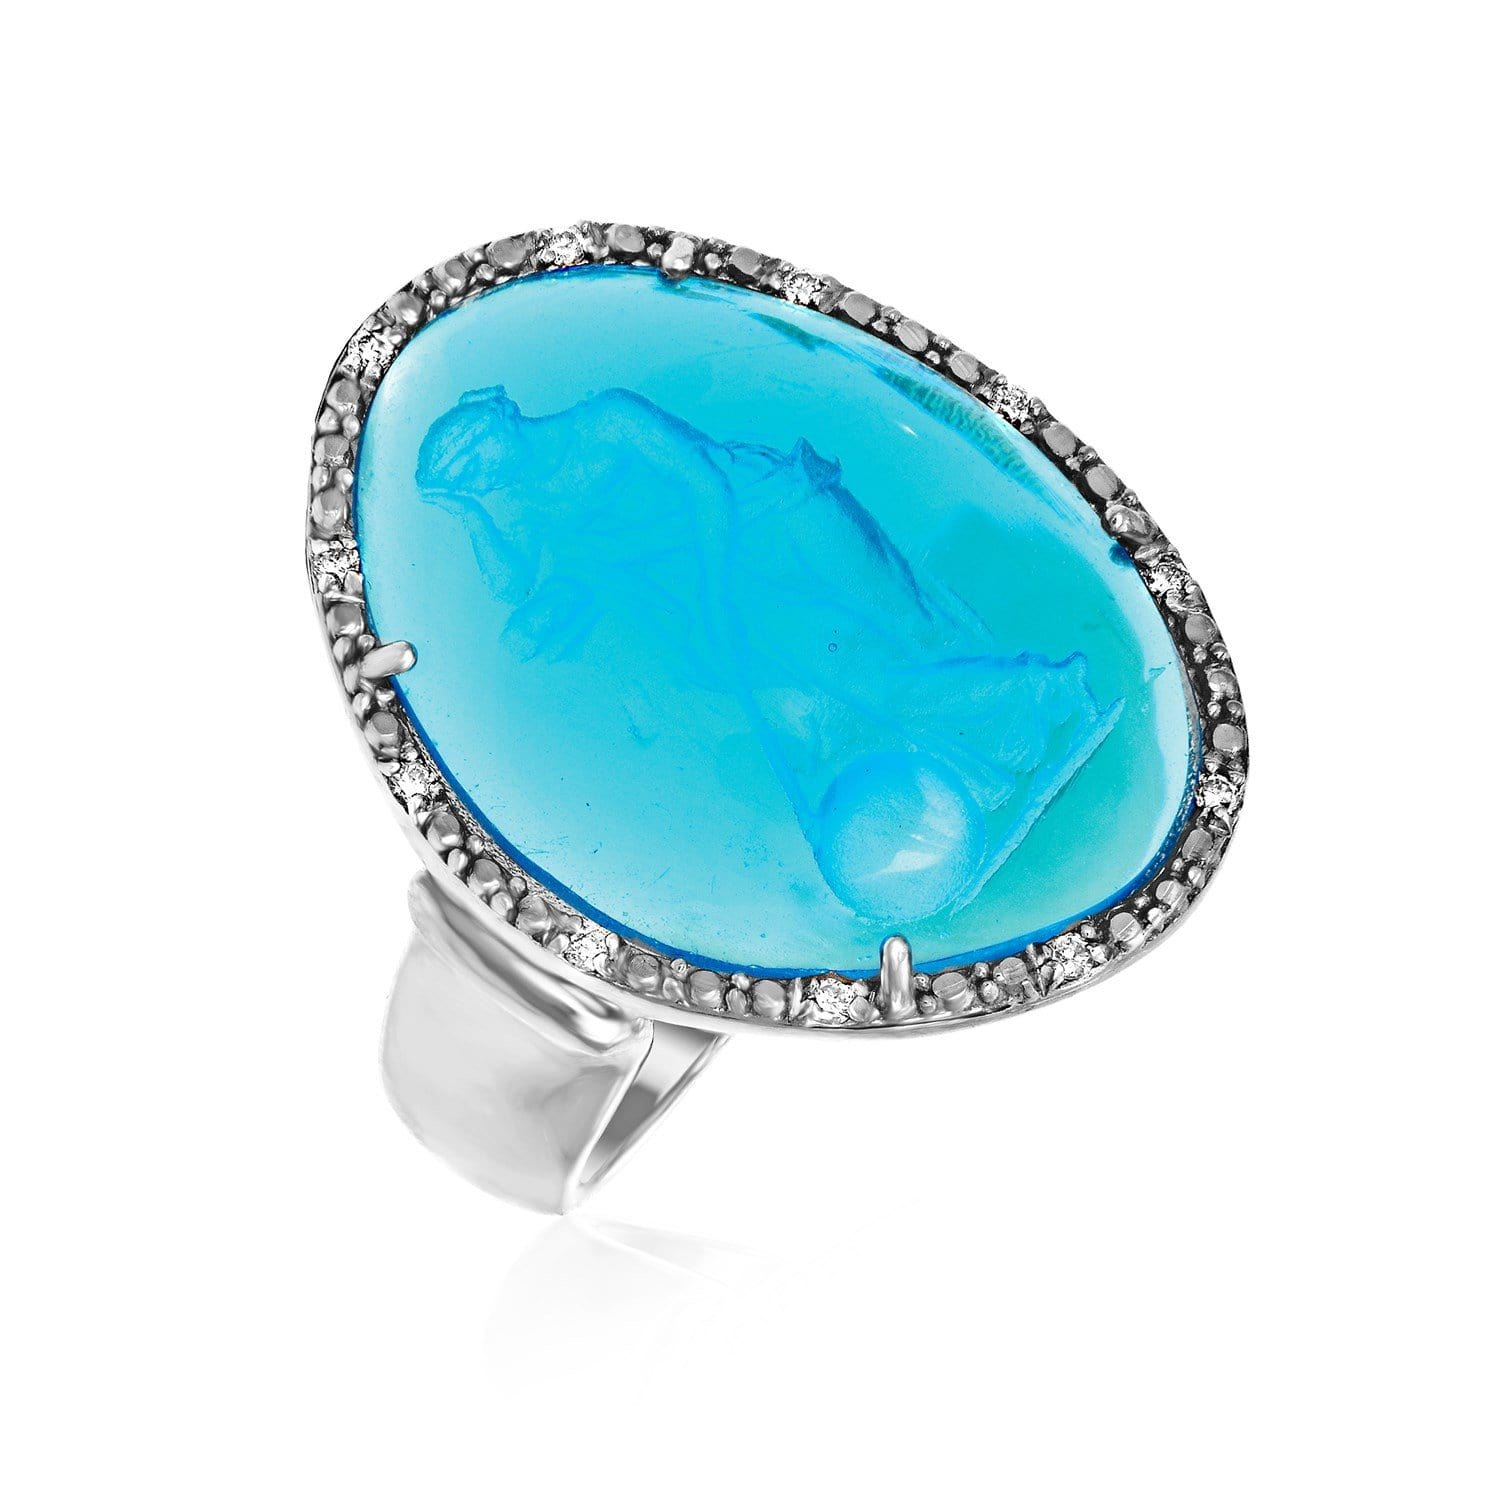 Sterling Silver Ring with Blue Venetian Glass Cameo Size 7